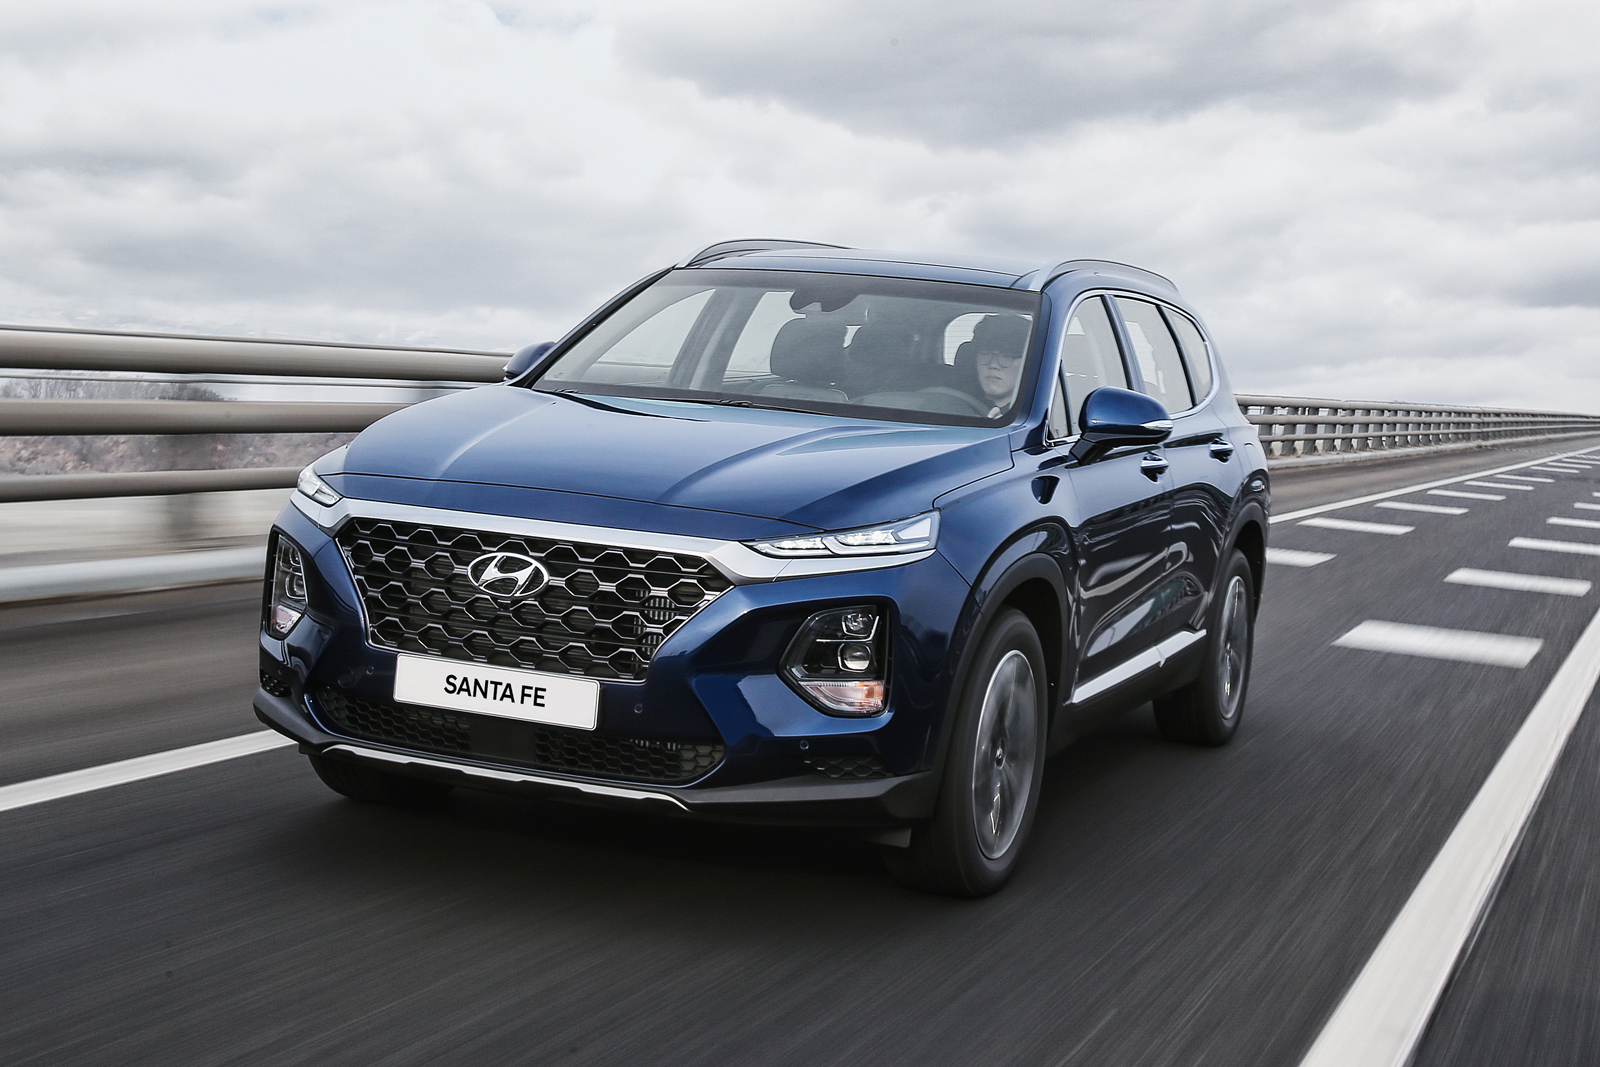 2019 hyundai santa fe debuts coming to dealerships this summer news. Black Bedroom Furniture Sets. Home Design Ideas